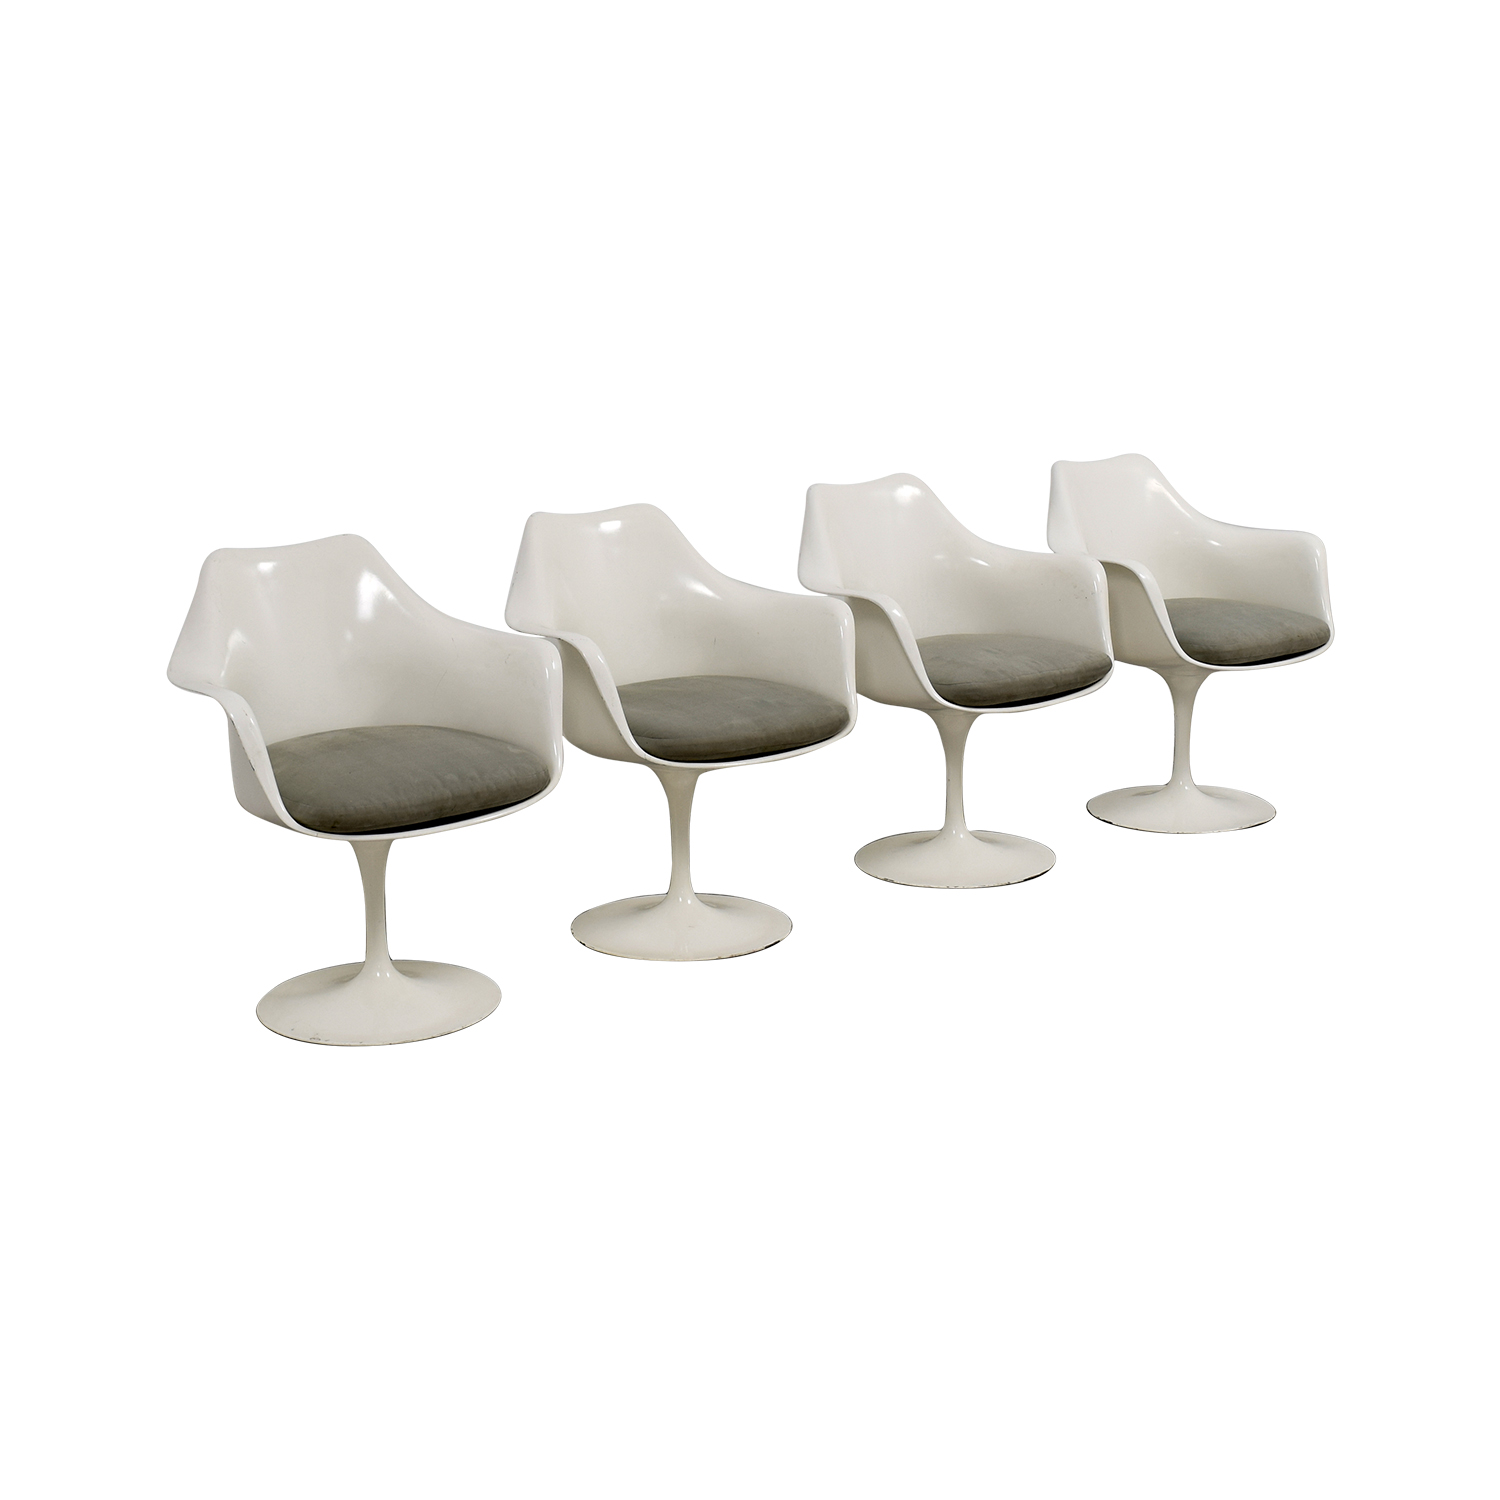 Jetson Chairs second hand